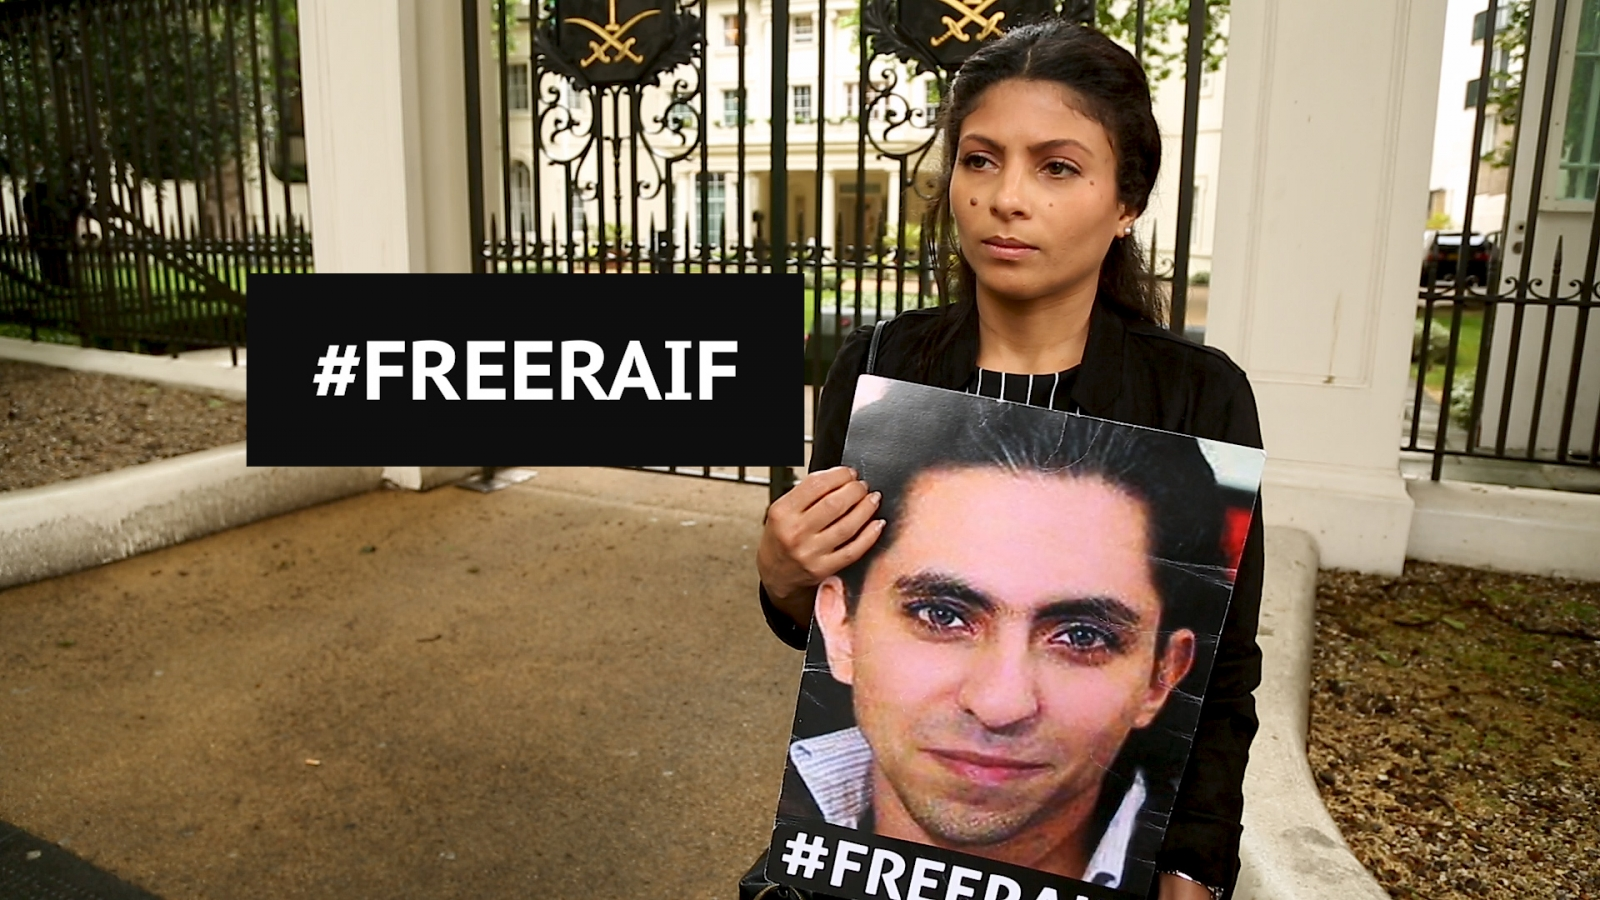 Jailed Saudi blogger Raif Badawi's wife: Free my husband